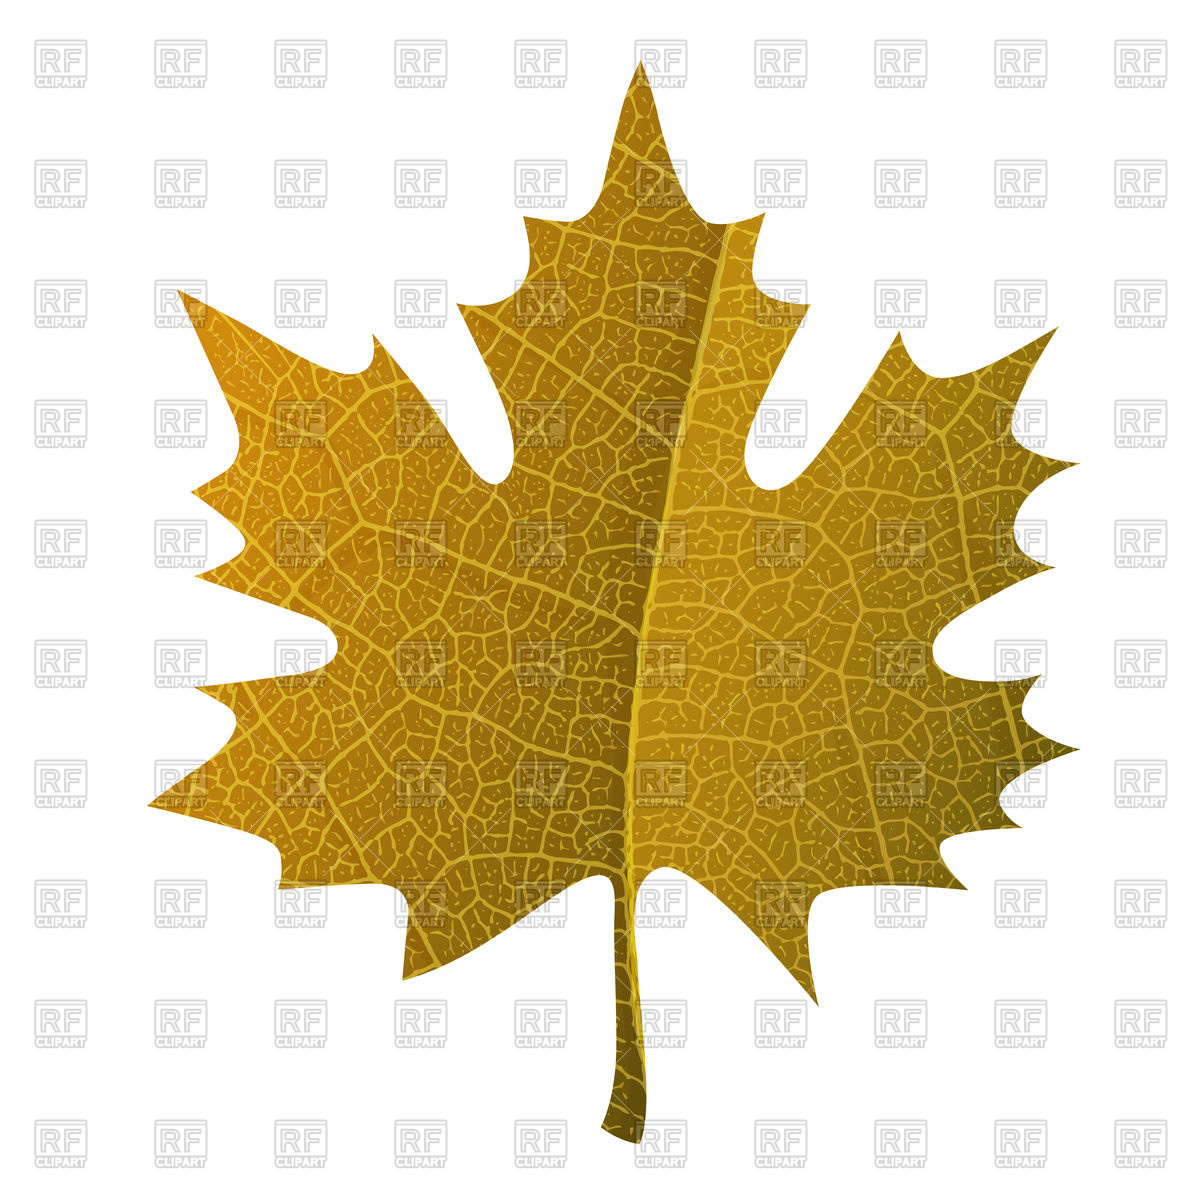 Orange maple leaf Vector Image #108937.